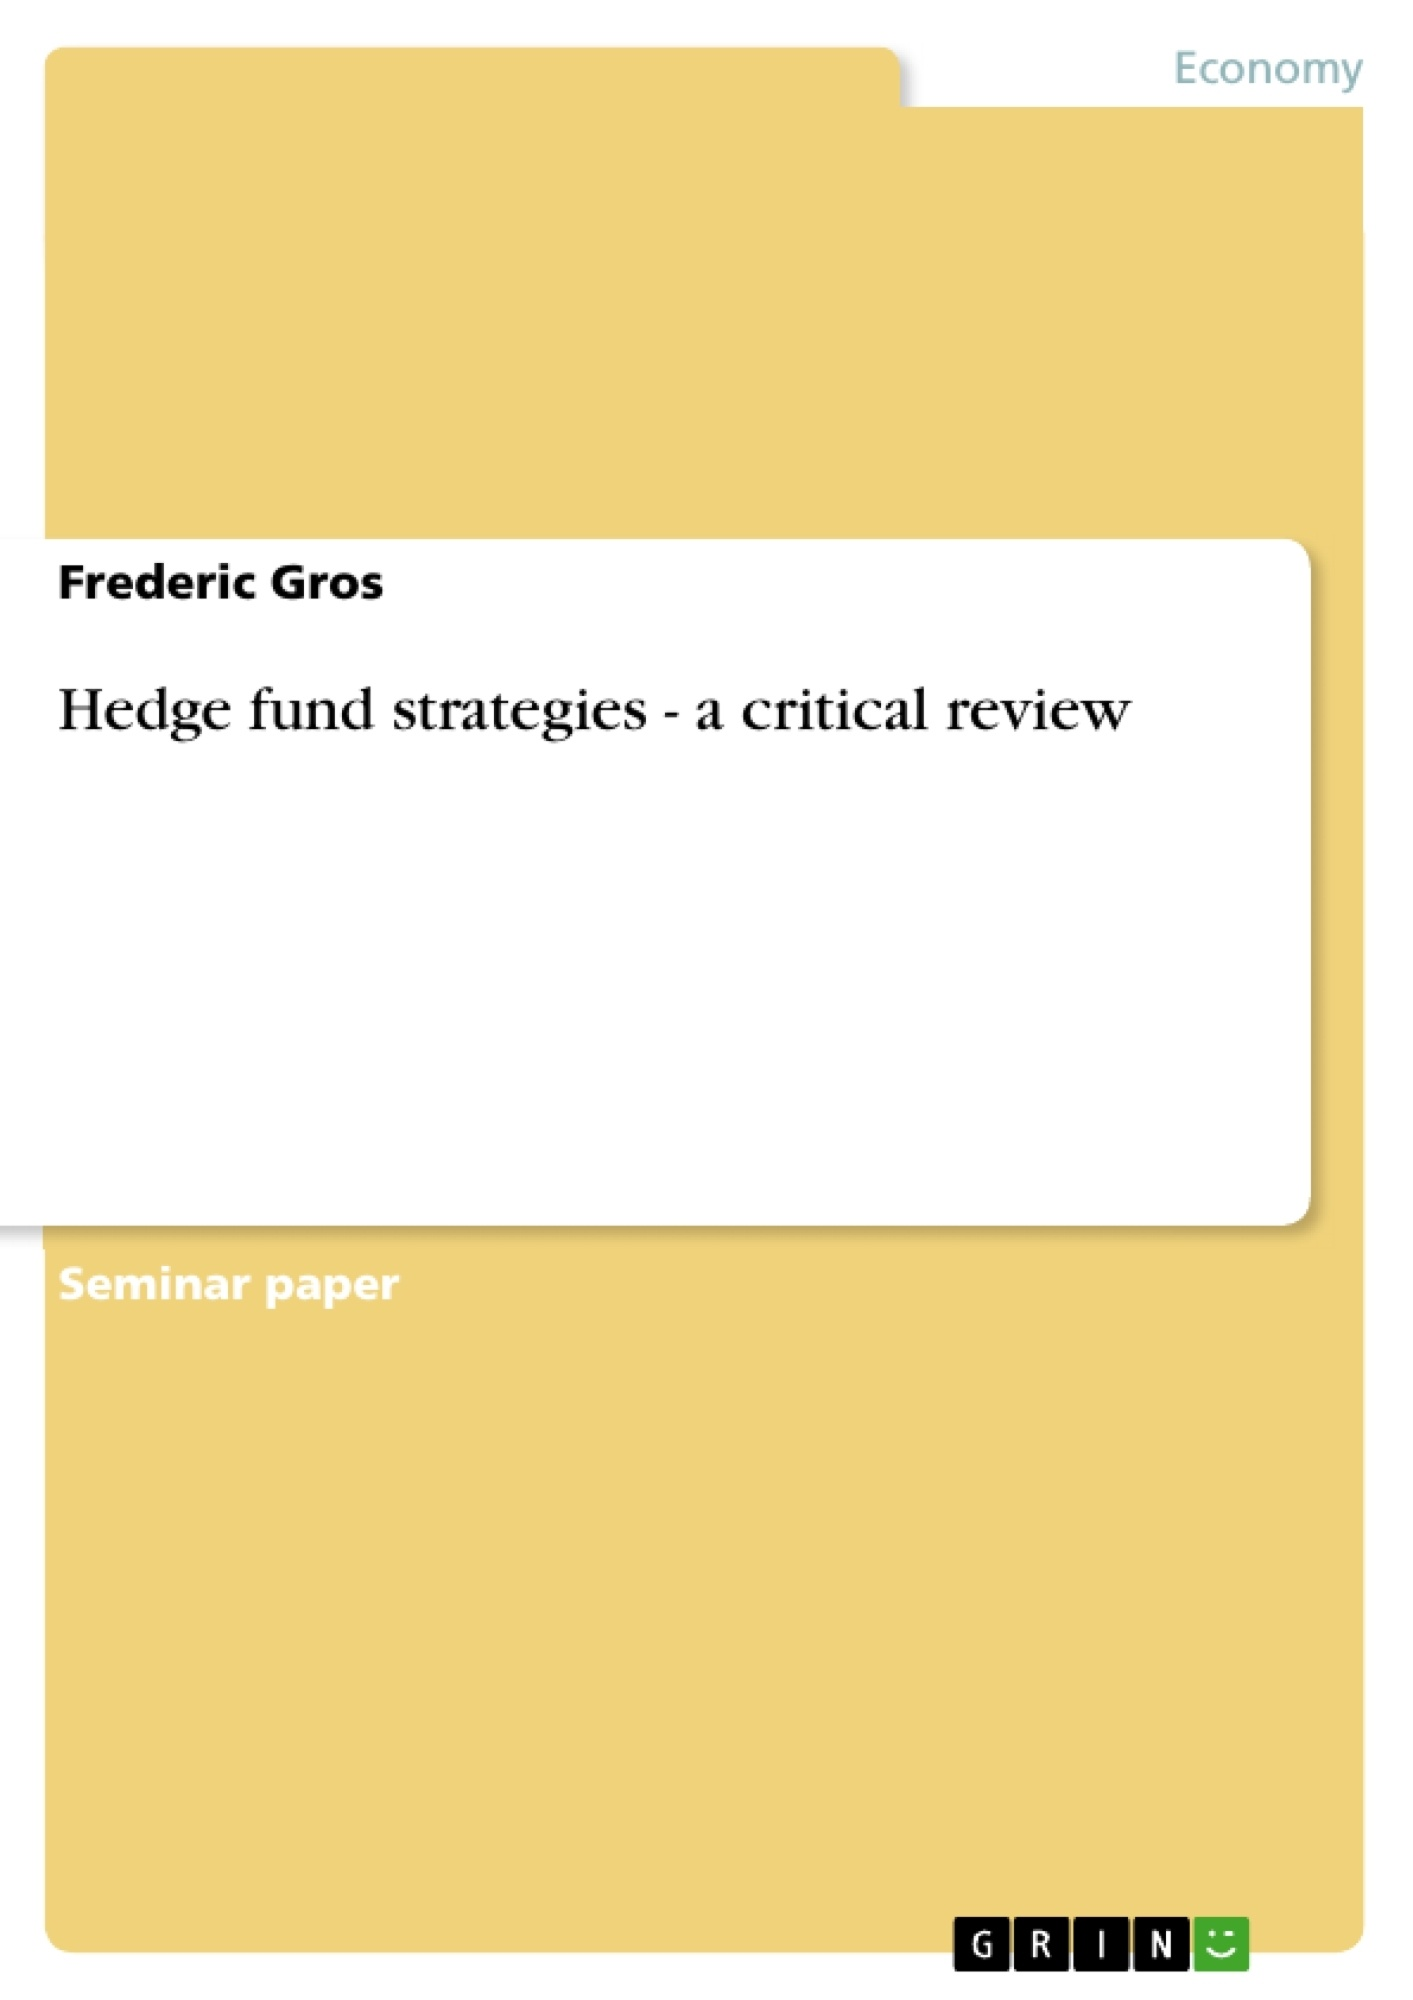 Title: Hedge fund strategies - a critical review